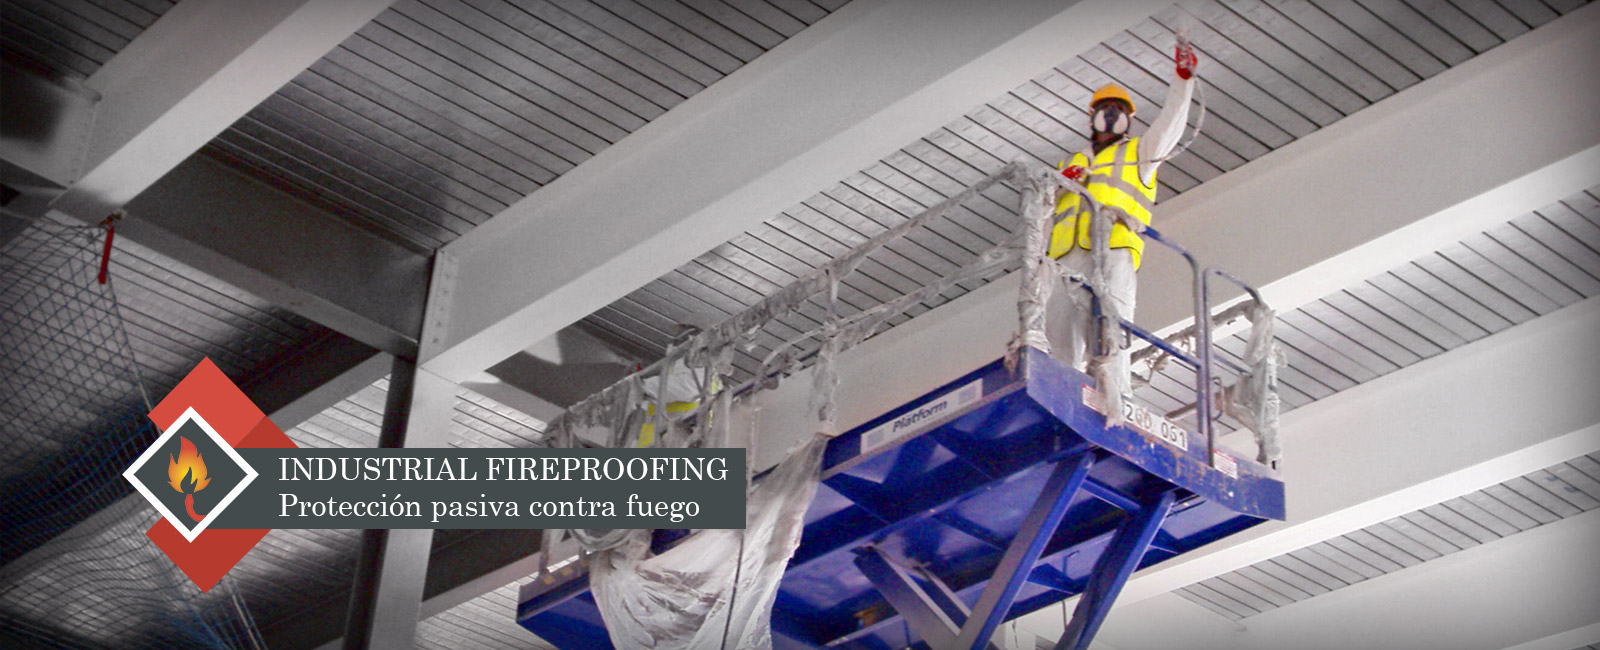 industrial-fireproofing-aistermbol